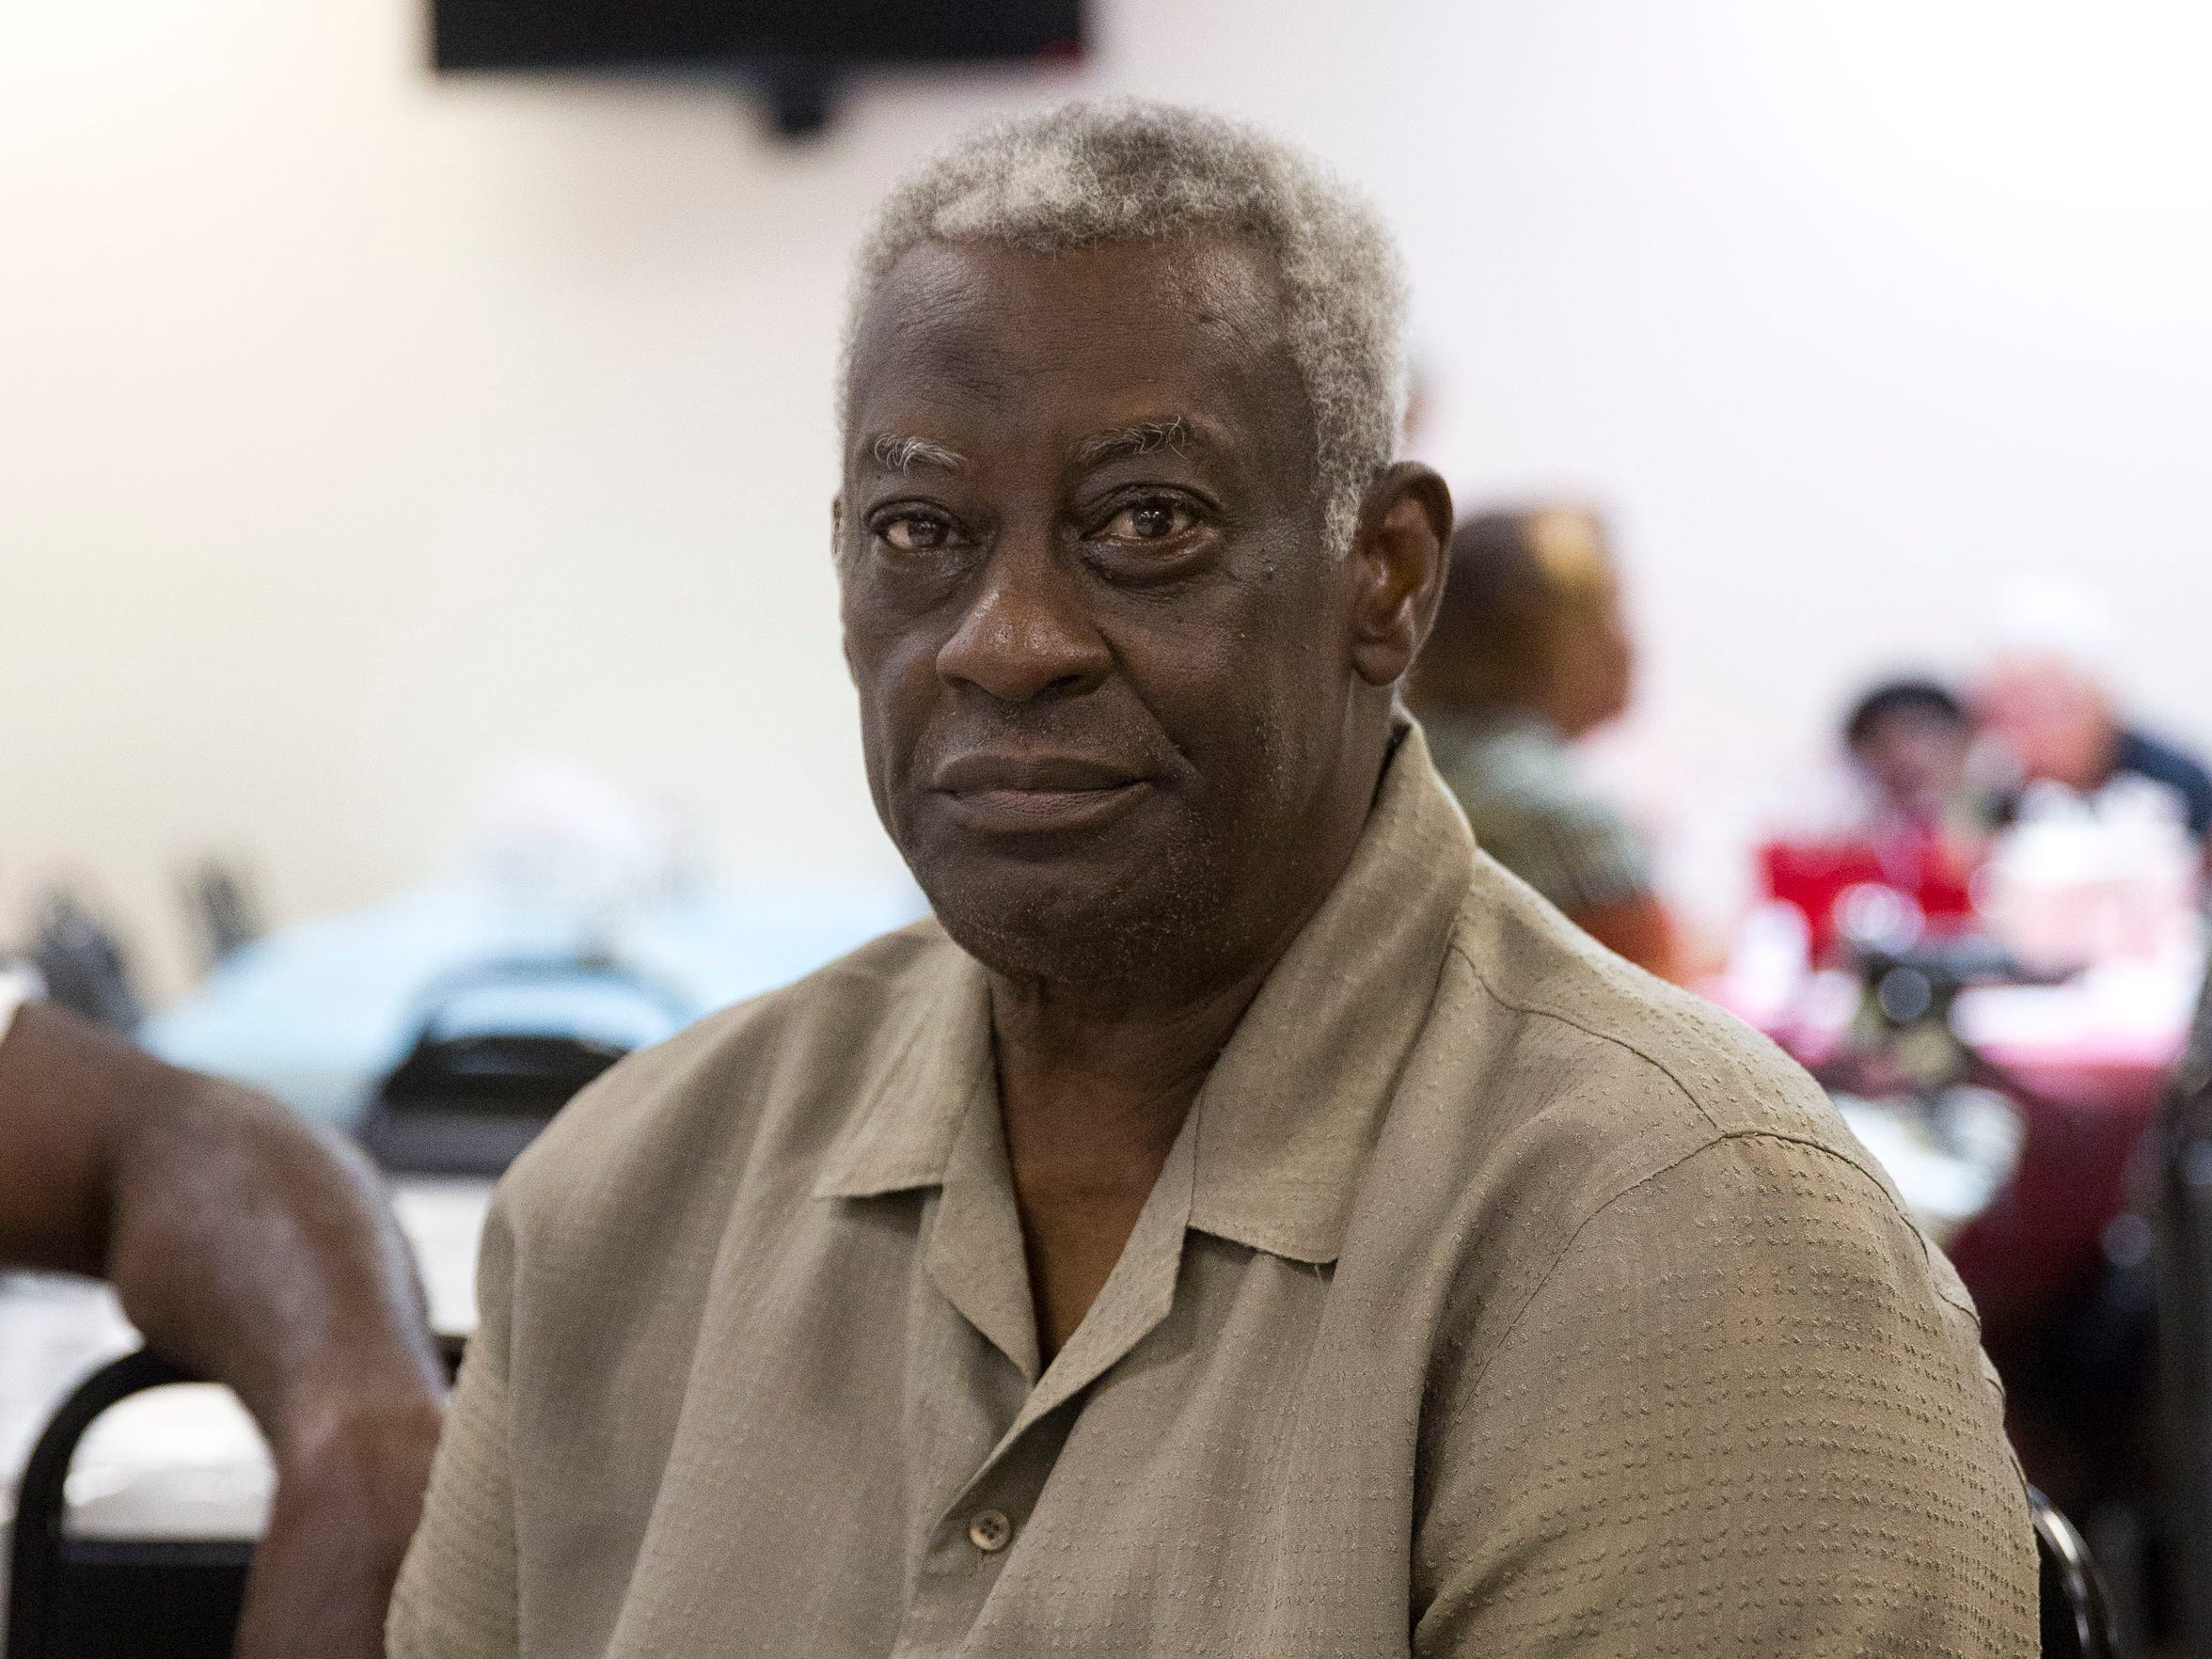 Charles Thornton, 72, a retired military member and